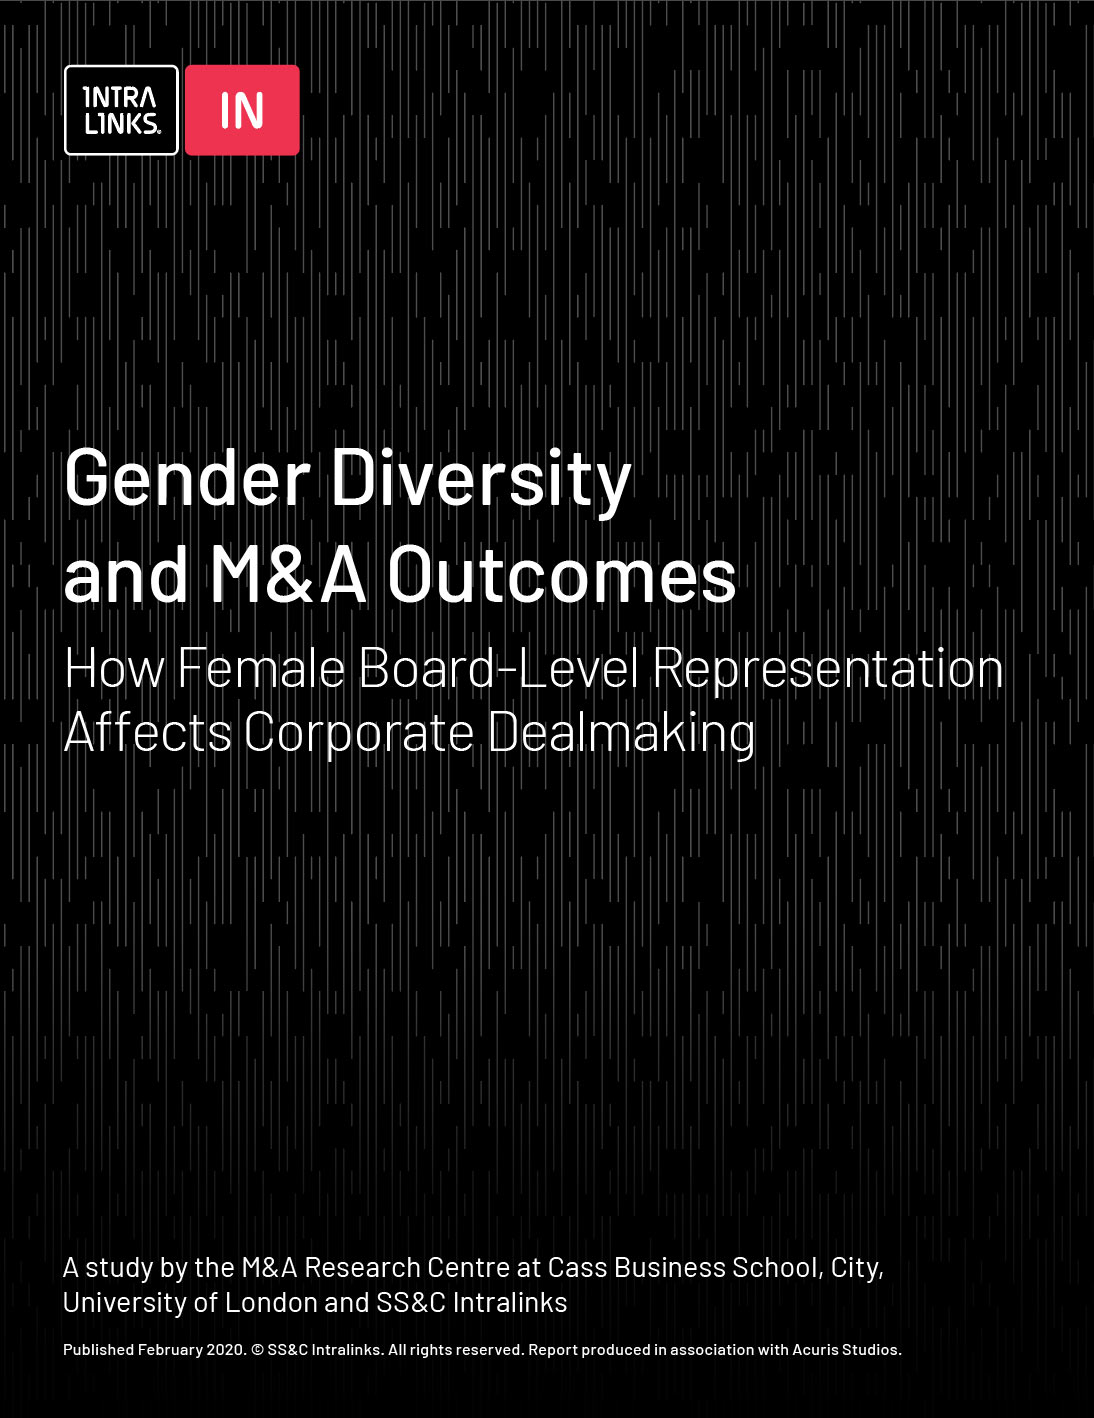 Gender Diversity and M&A Outcomes report cover